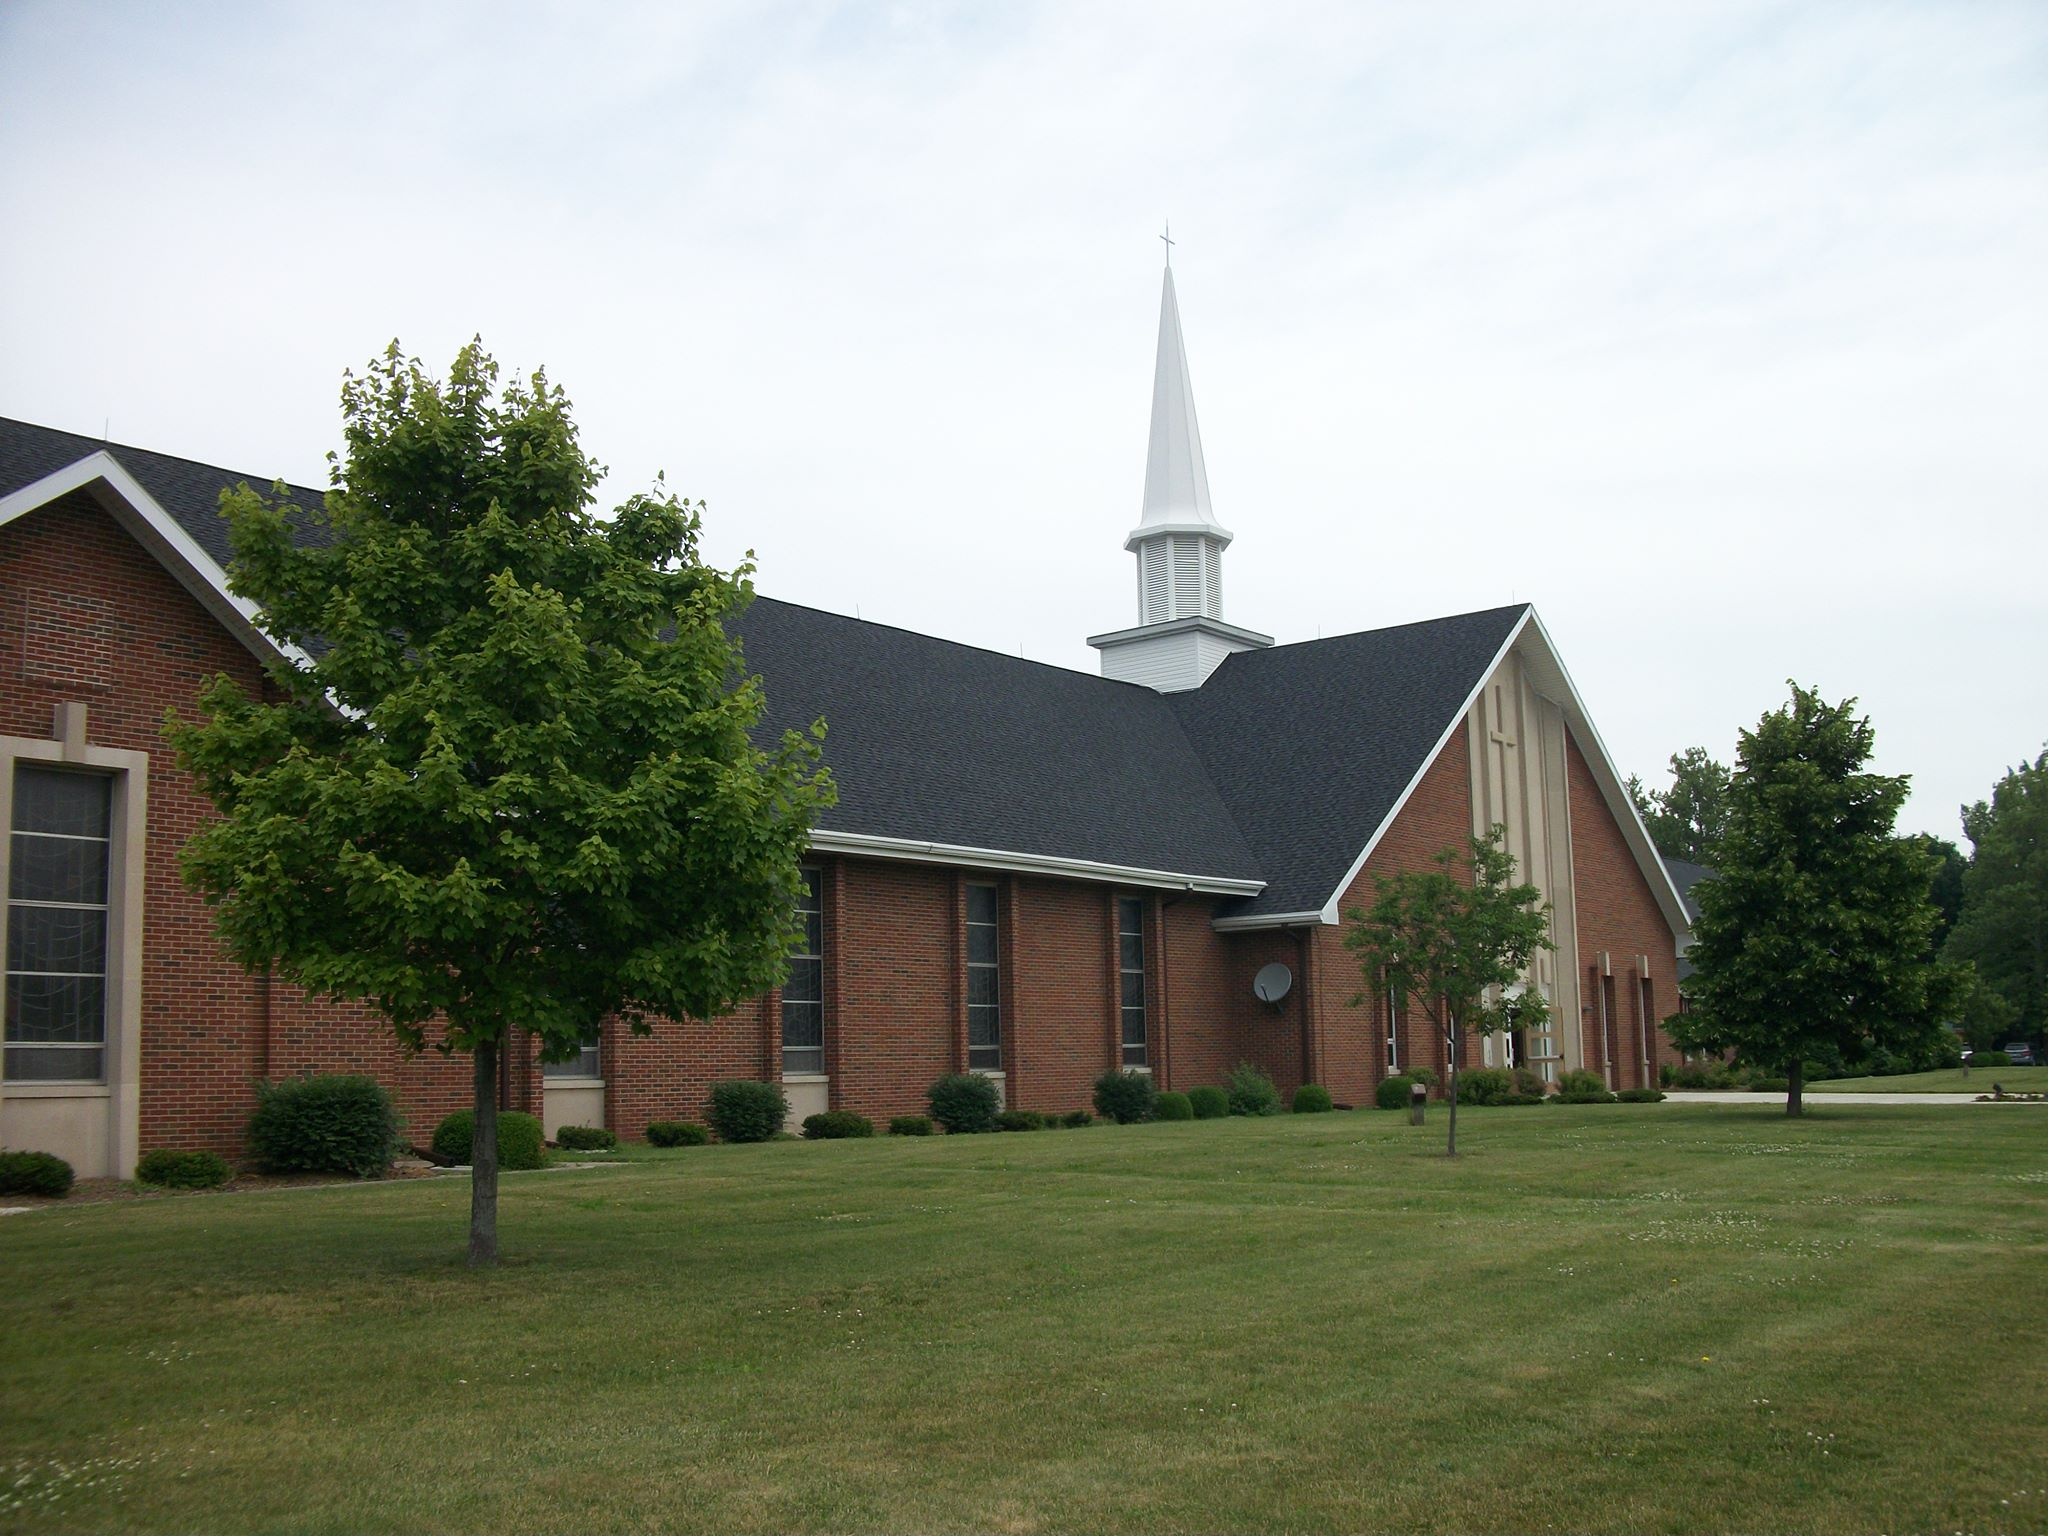 Image of St. John's Lutheran Church